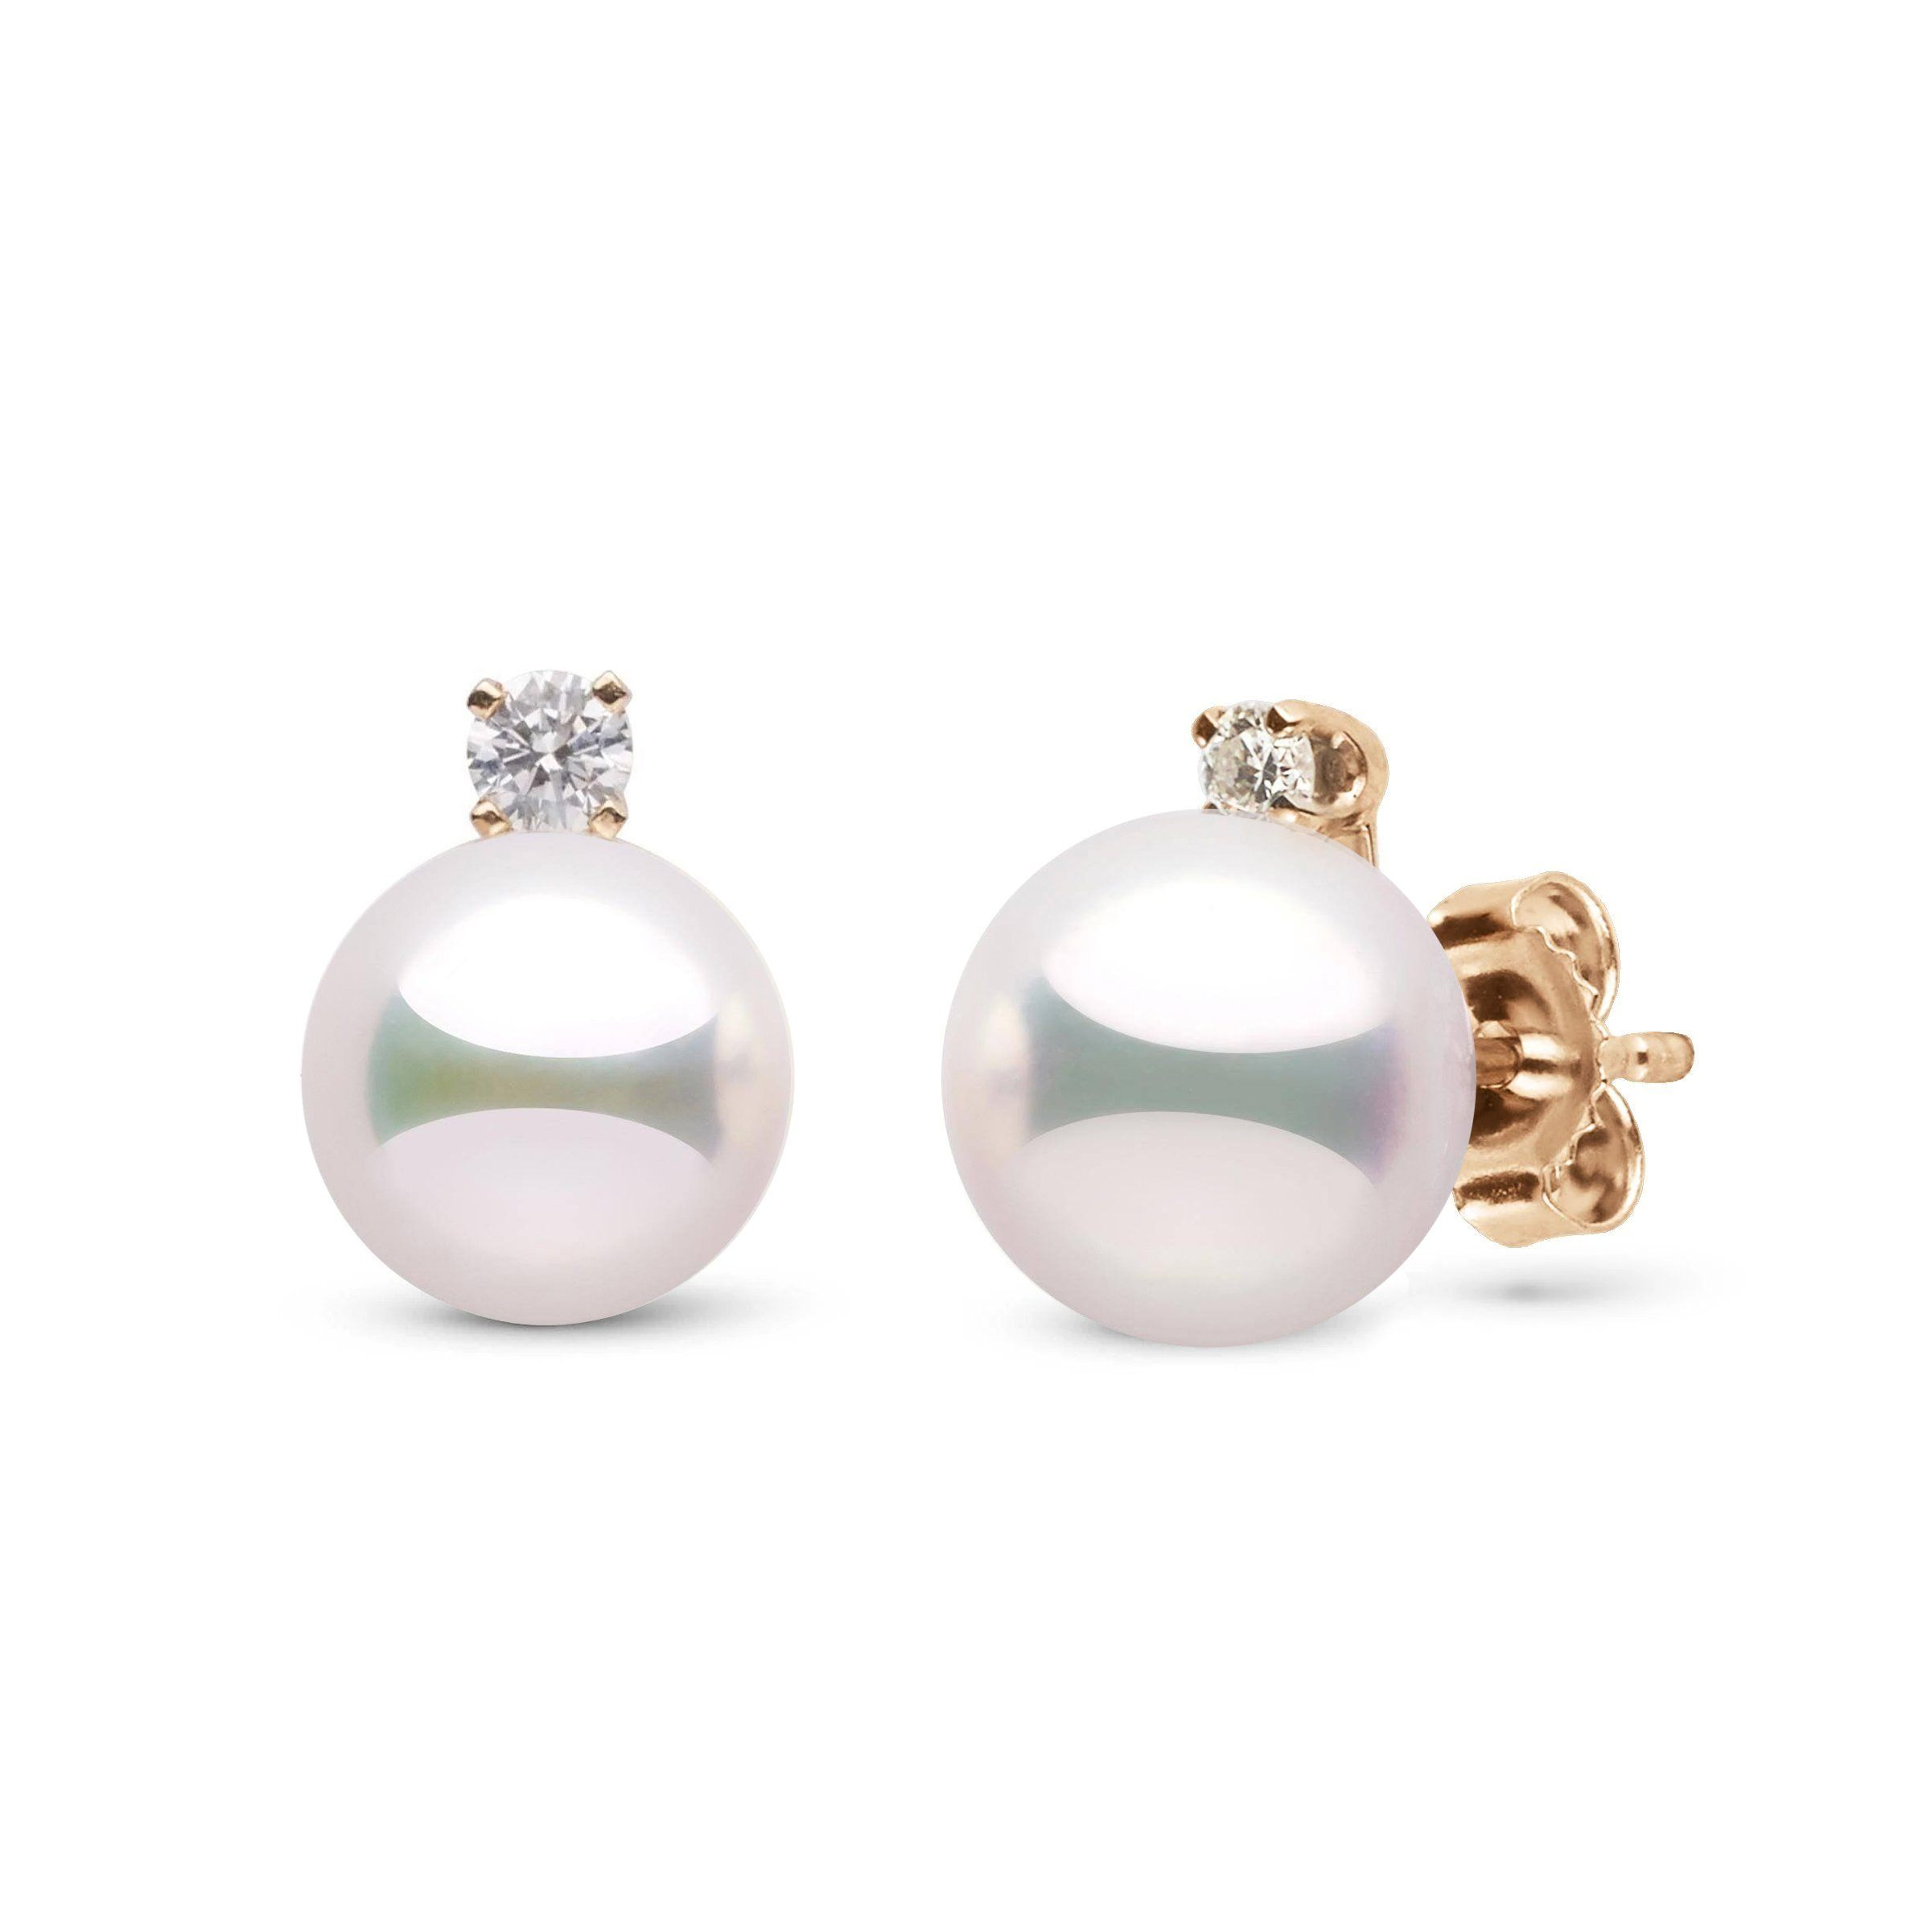 Starlight Collection 8.0-8.5 mm White Hanadama Pearl and Diamond Stud Earrings